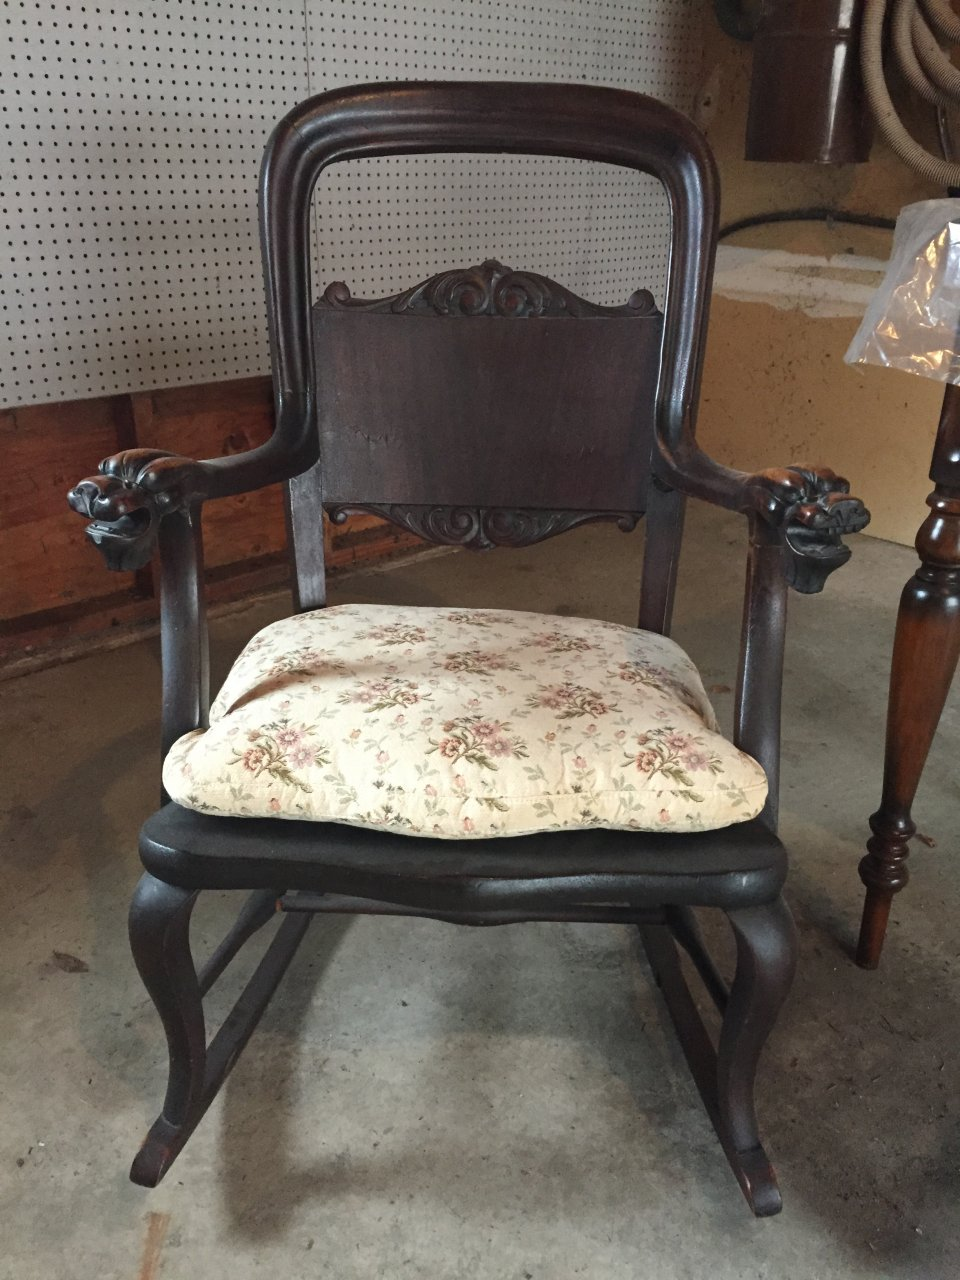 Rocking Chair With Lions Head Arms My Antique Furniture